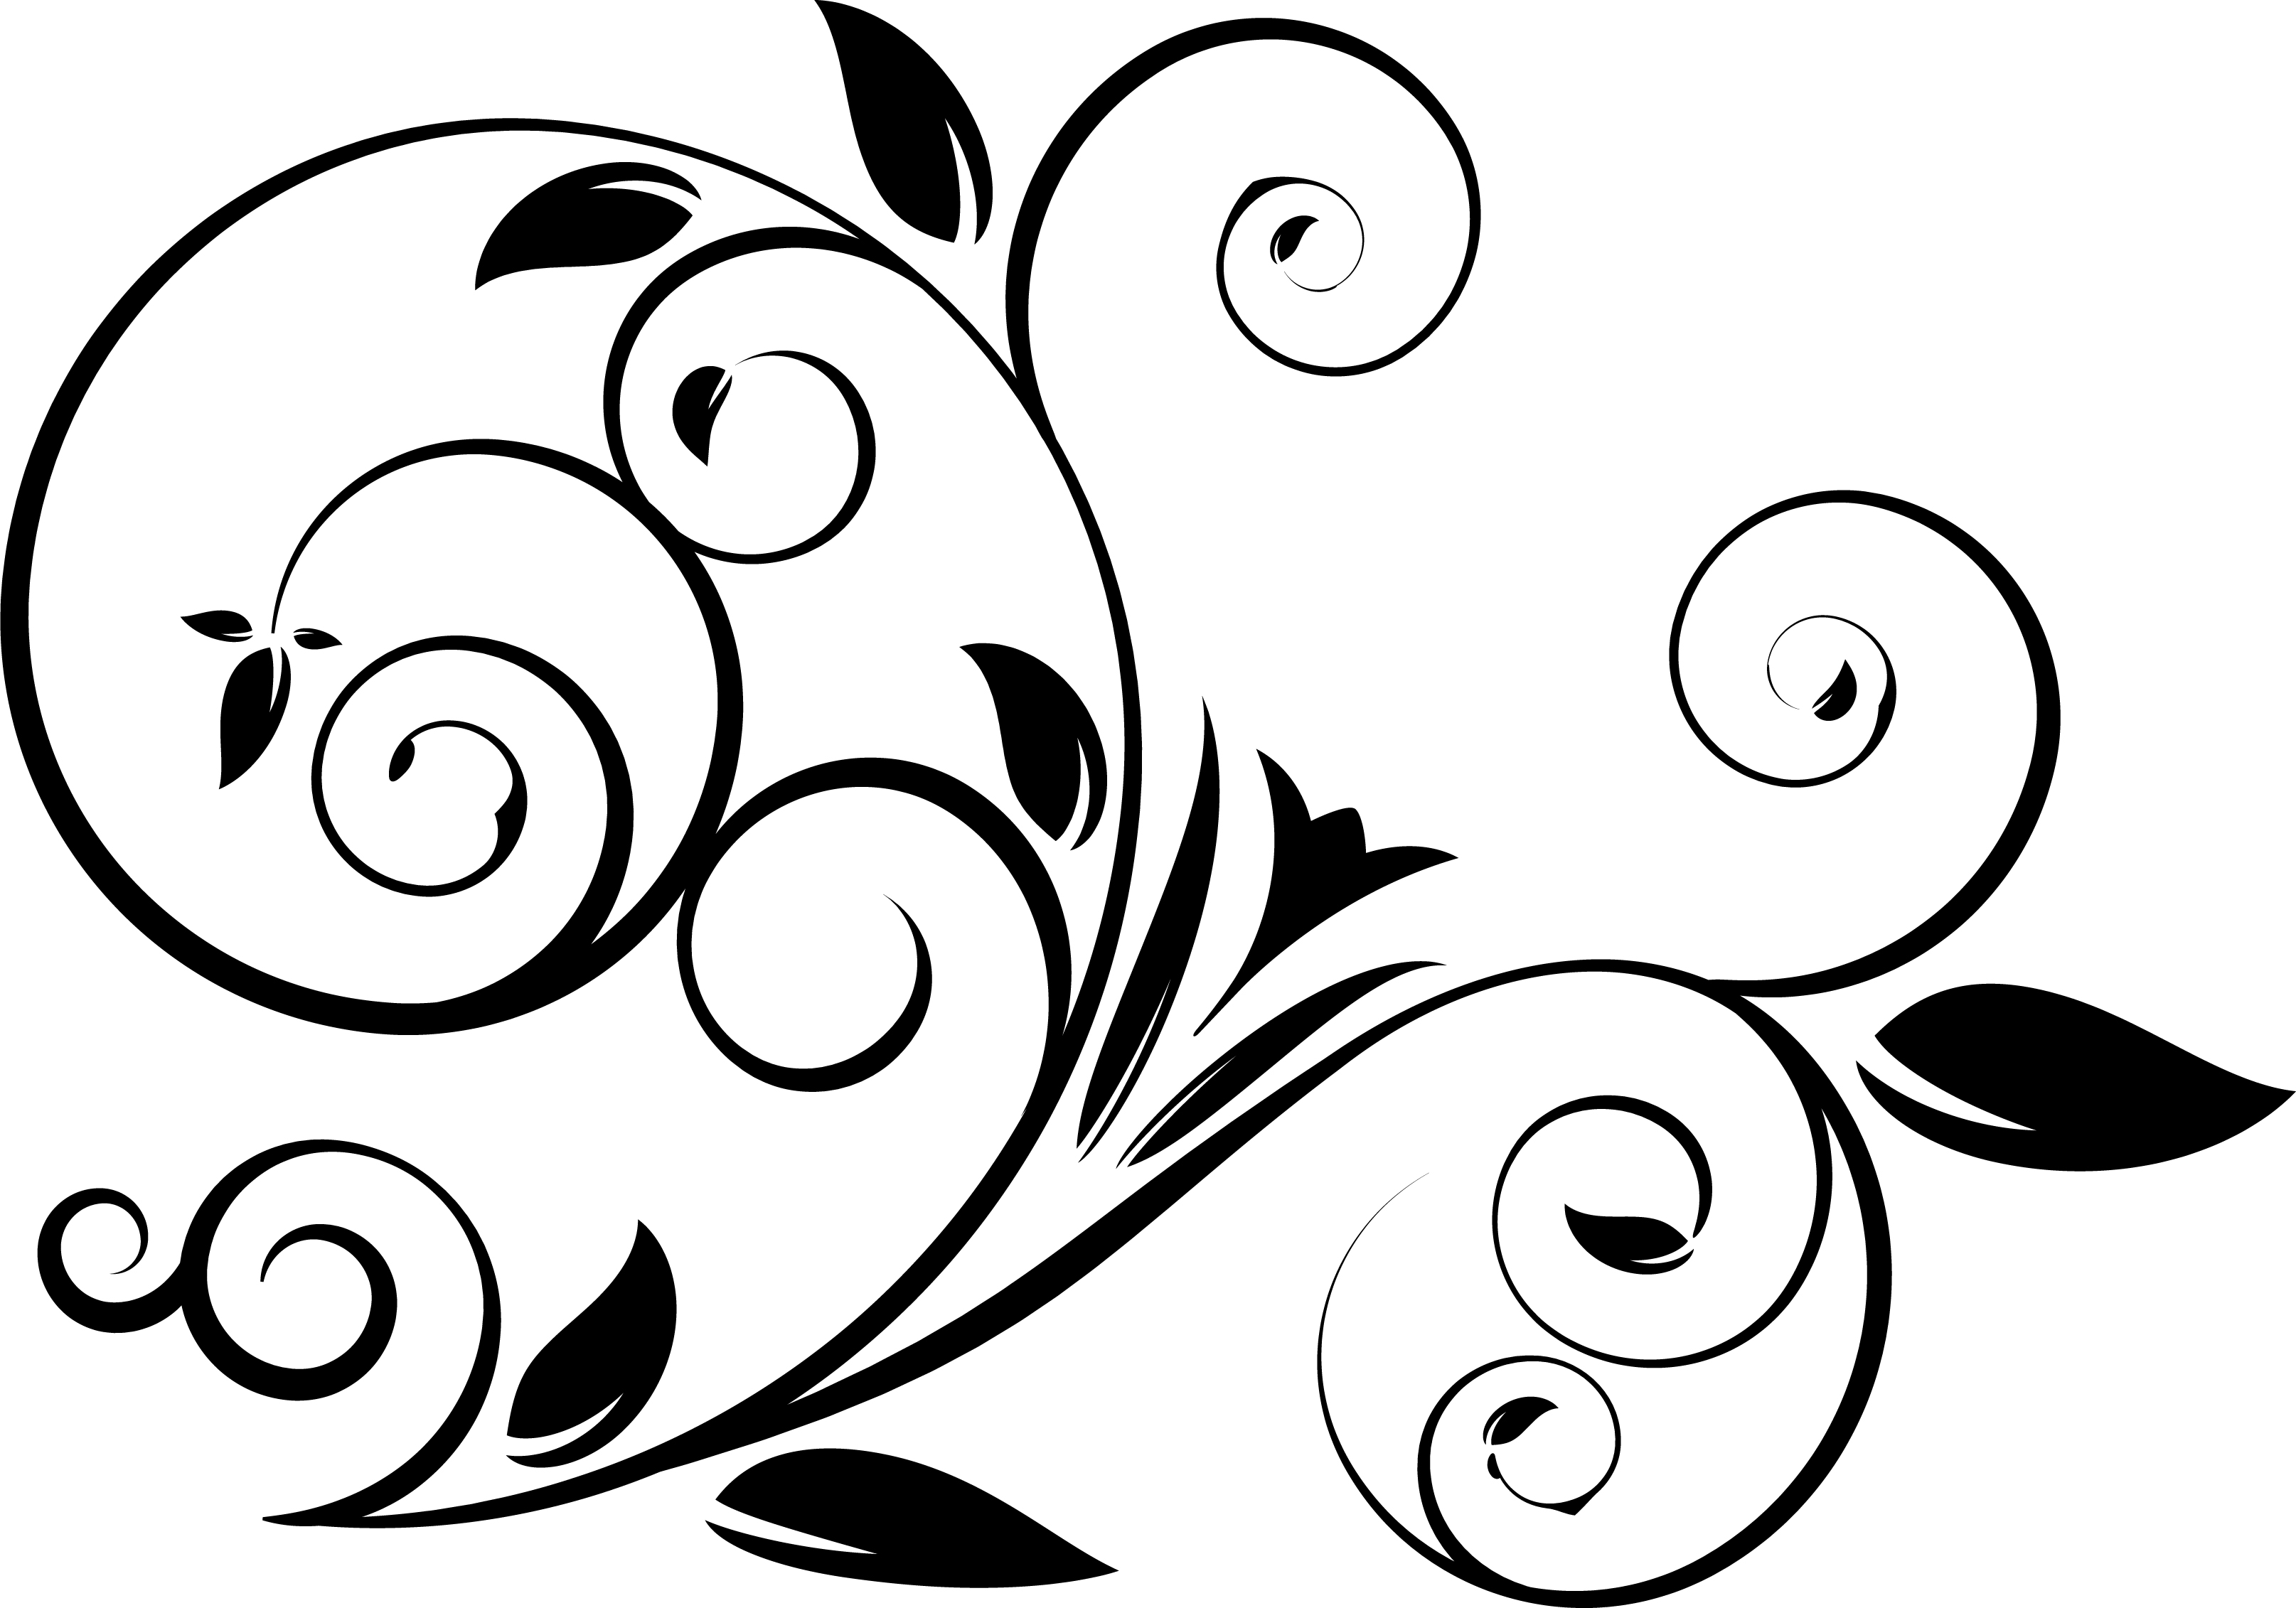 5 Swirl Vectors Svg Dxf Png Jpg Eps vector file Cut Files example image 4